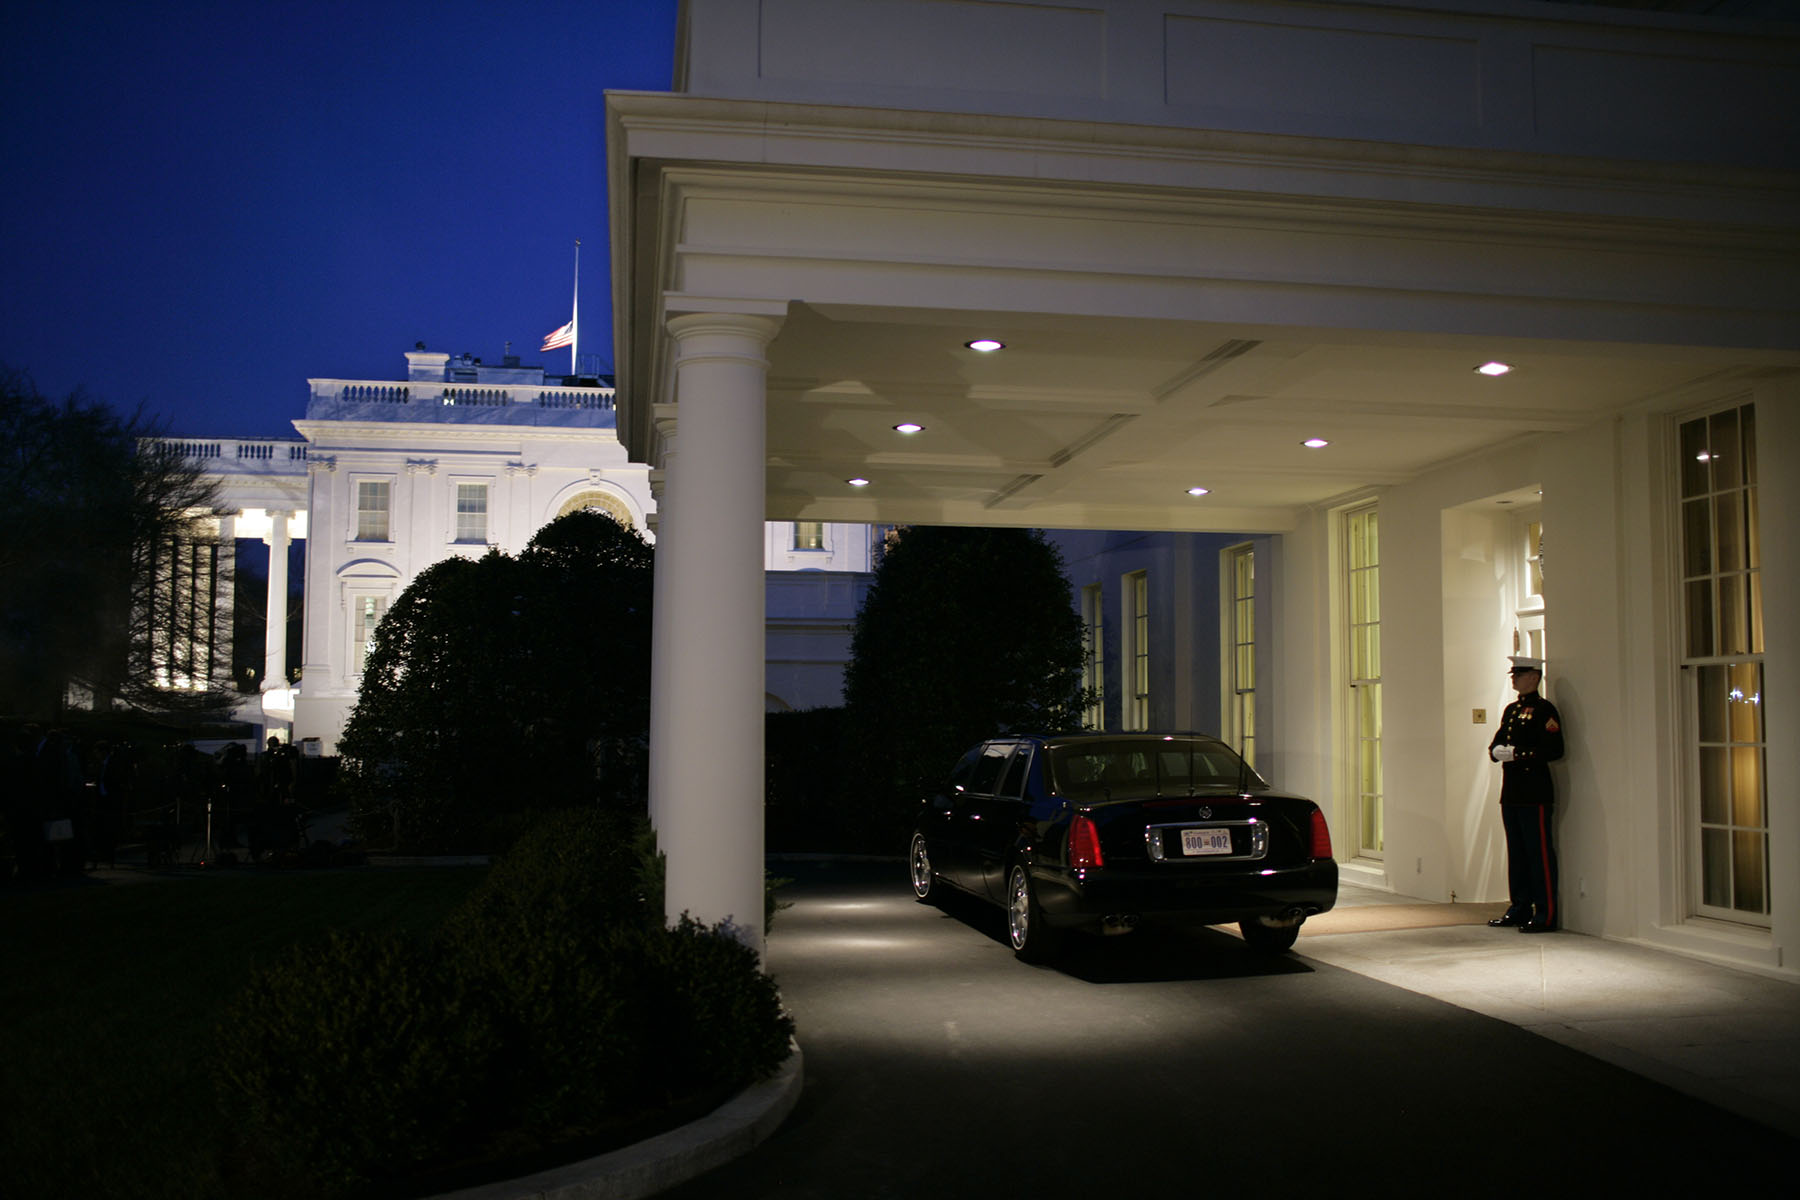 A United States Marine stands guard at the diplomatic entrance of the West Wing, near German Chancellor Angela Merkel's limousine.    Merkel was meeting with President Bush in the Oval Office at the White House in Washington Thursday, Jan. 4, 2007.Photo by Brooks Kraft/Corbis